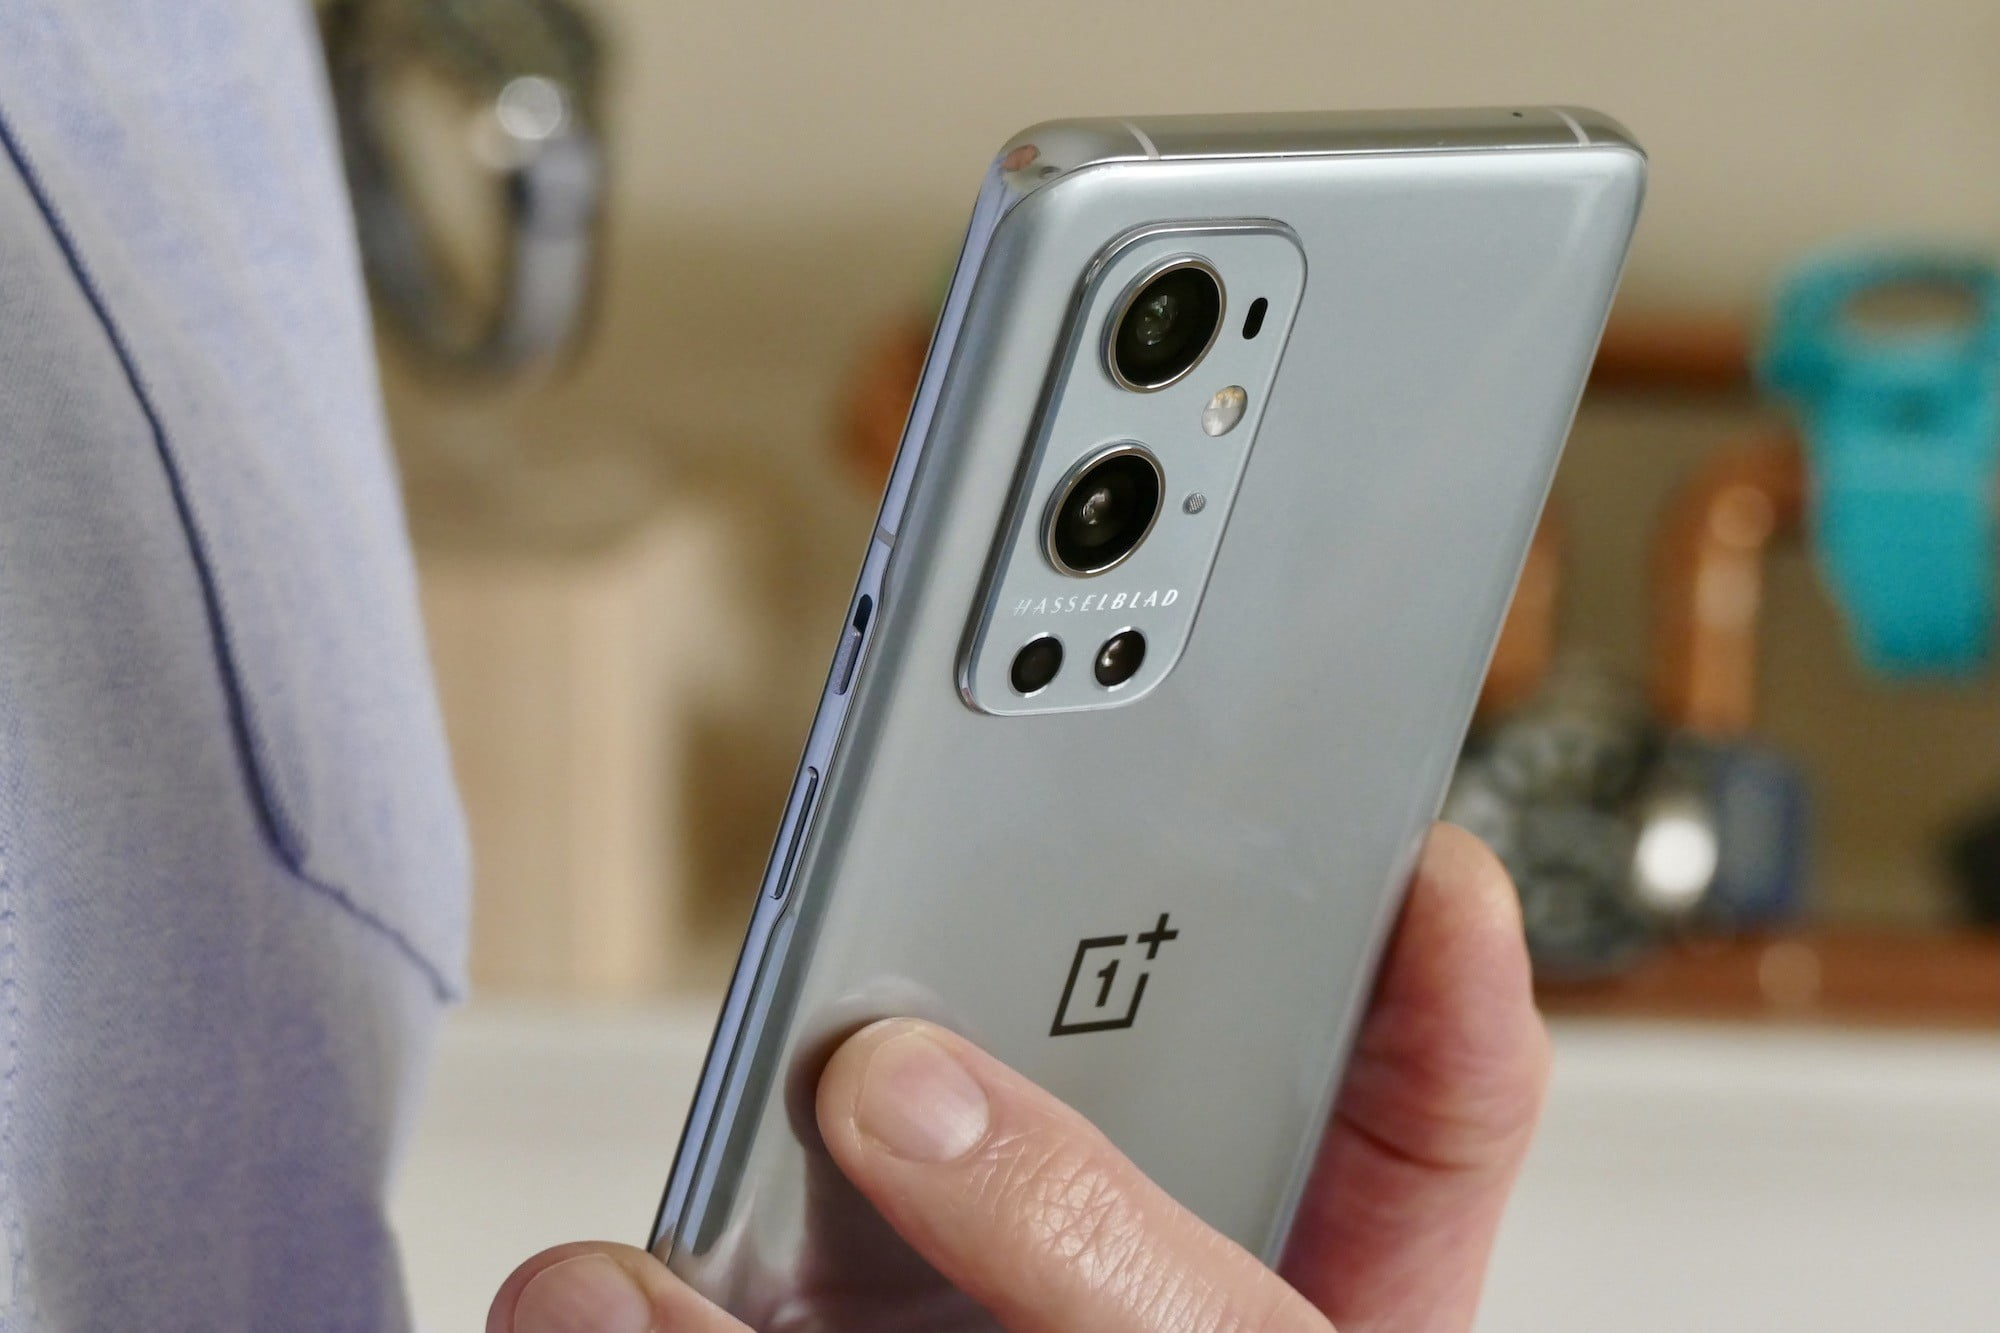 oneplus 9 pro review camera hand